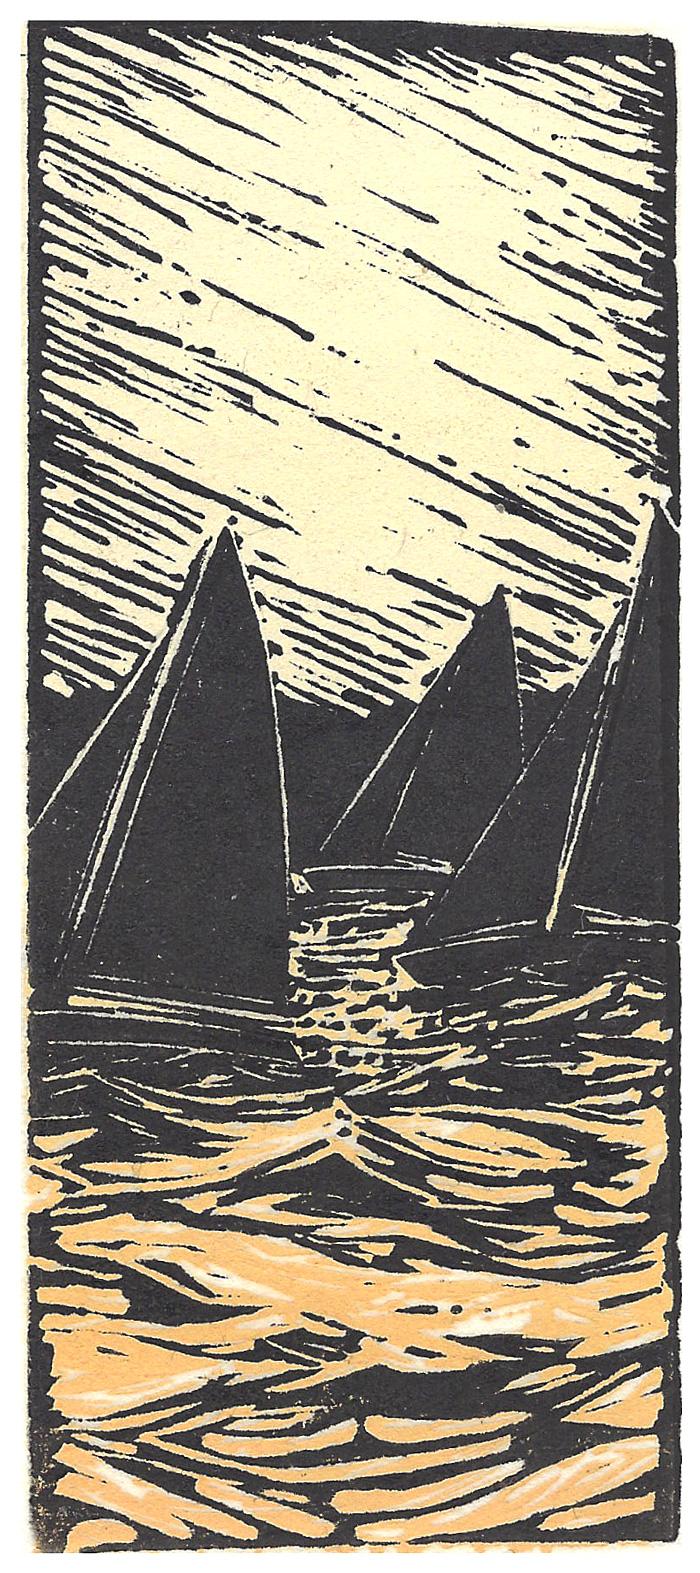 Sail-Sketch-(on-creme-paper)